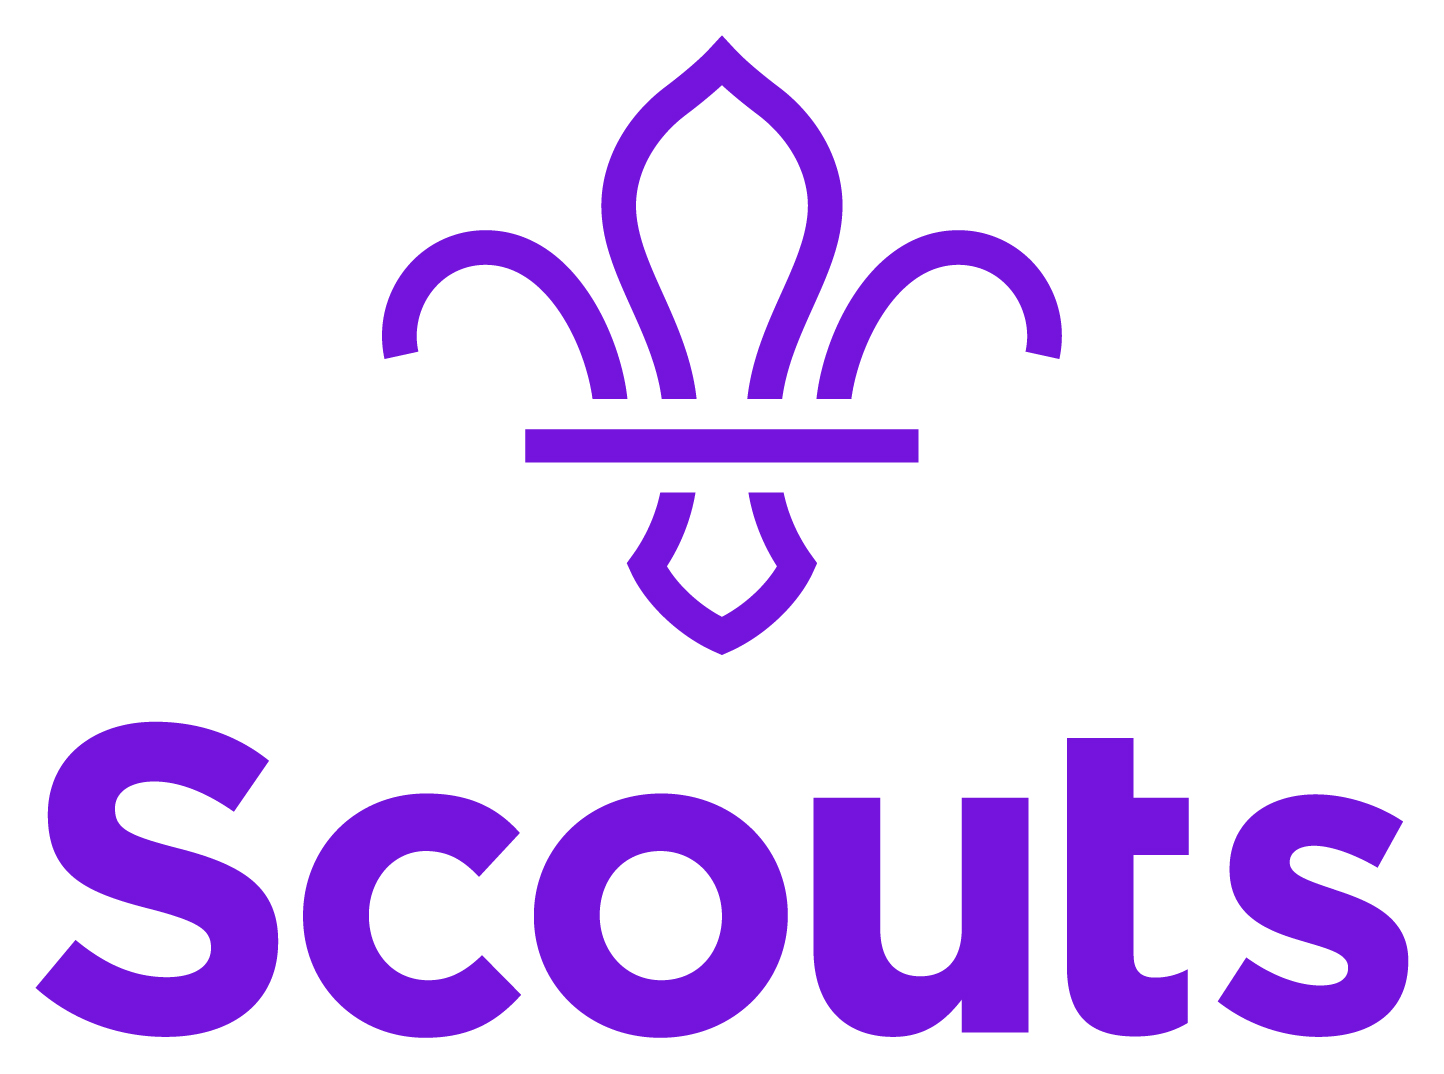 Knowle West Scouts Group